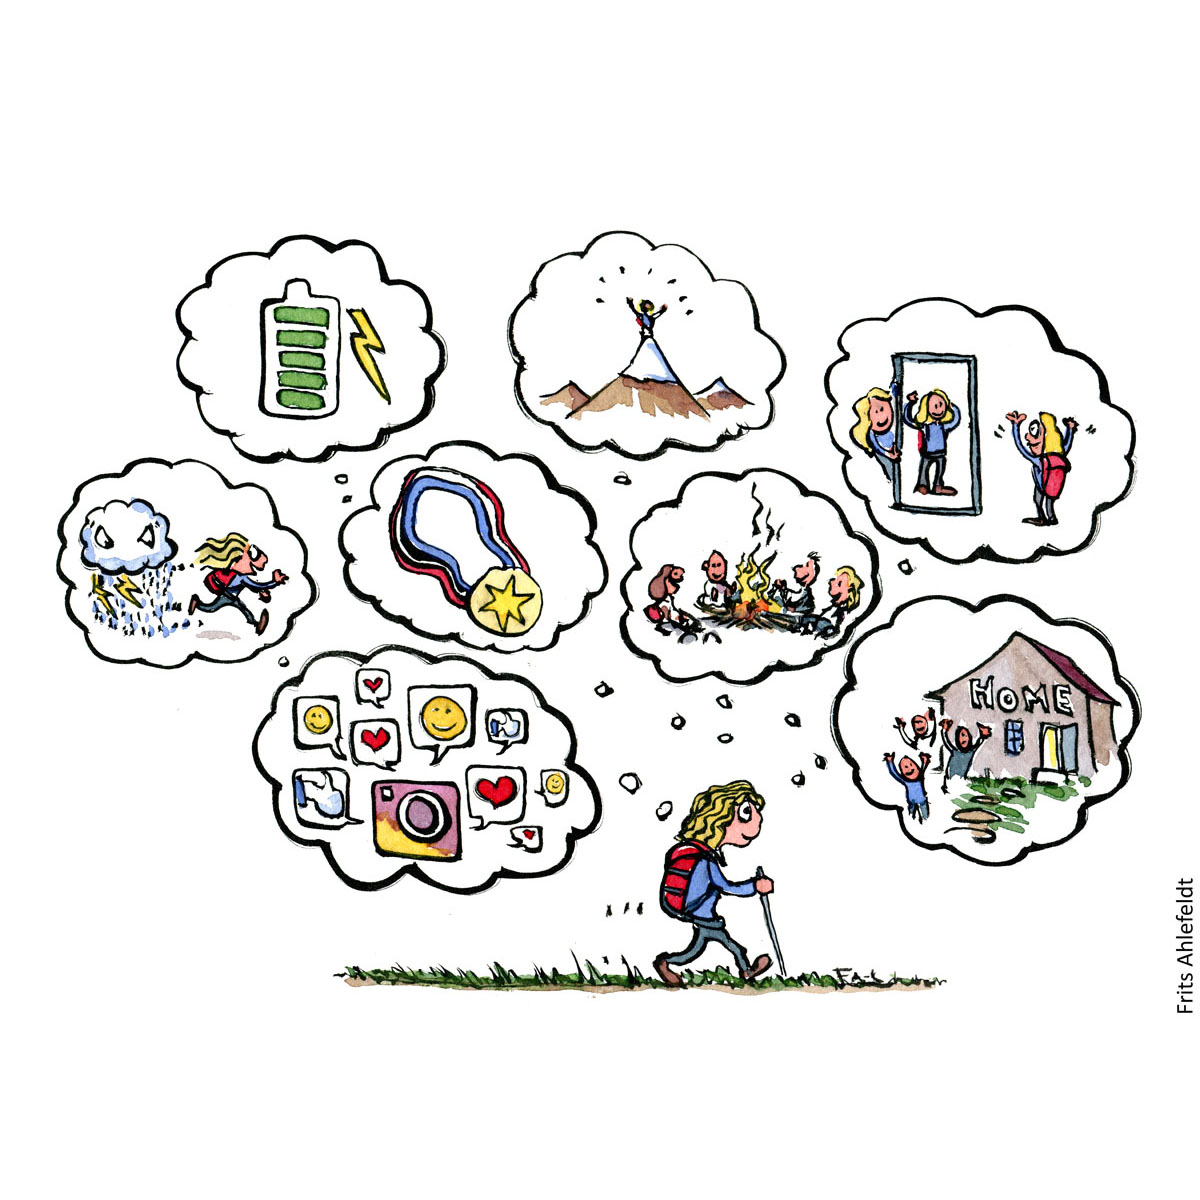 Drawing of hiker walking while thoughts and motivation change. About how our thoughts change all the time. Psychology illustration by Frits Ahlefeldt